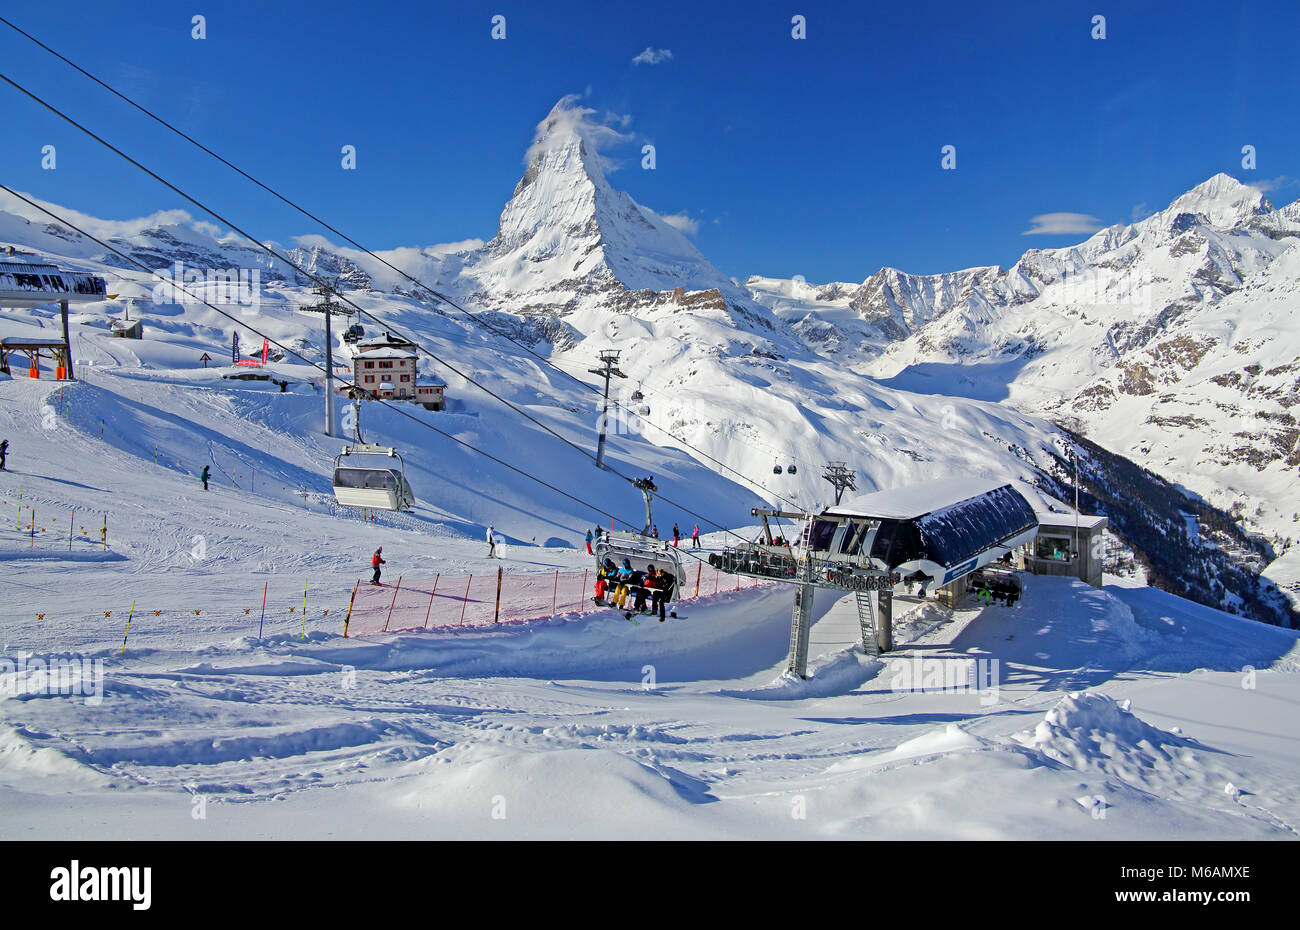 Ski area Riffelberg with chairlift, in the back Matterhorn 4478m, Zermatt, Mattertal, Valais, Switzerland - Stock Image